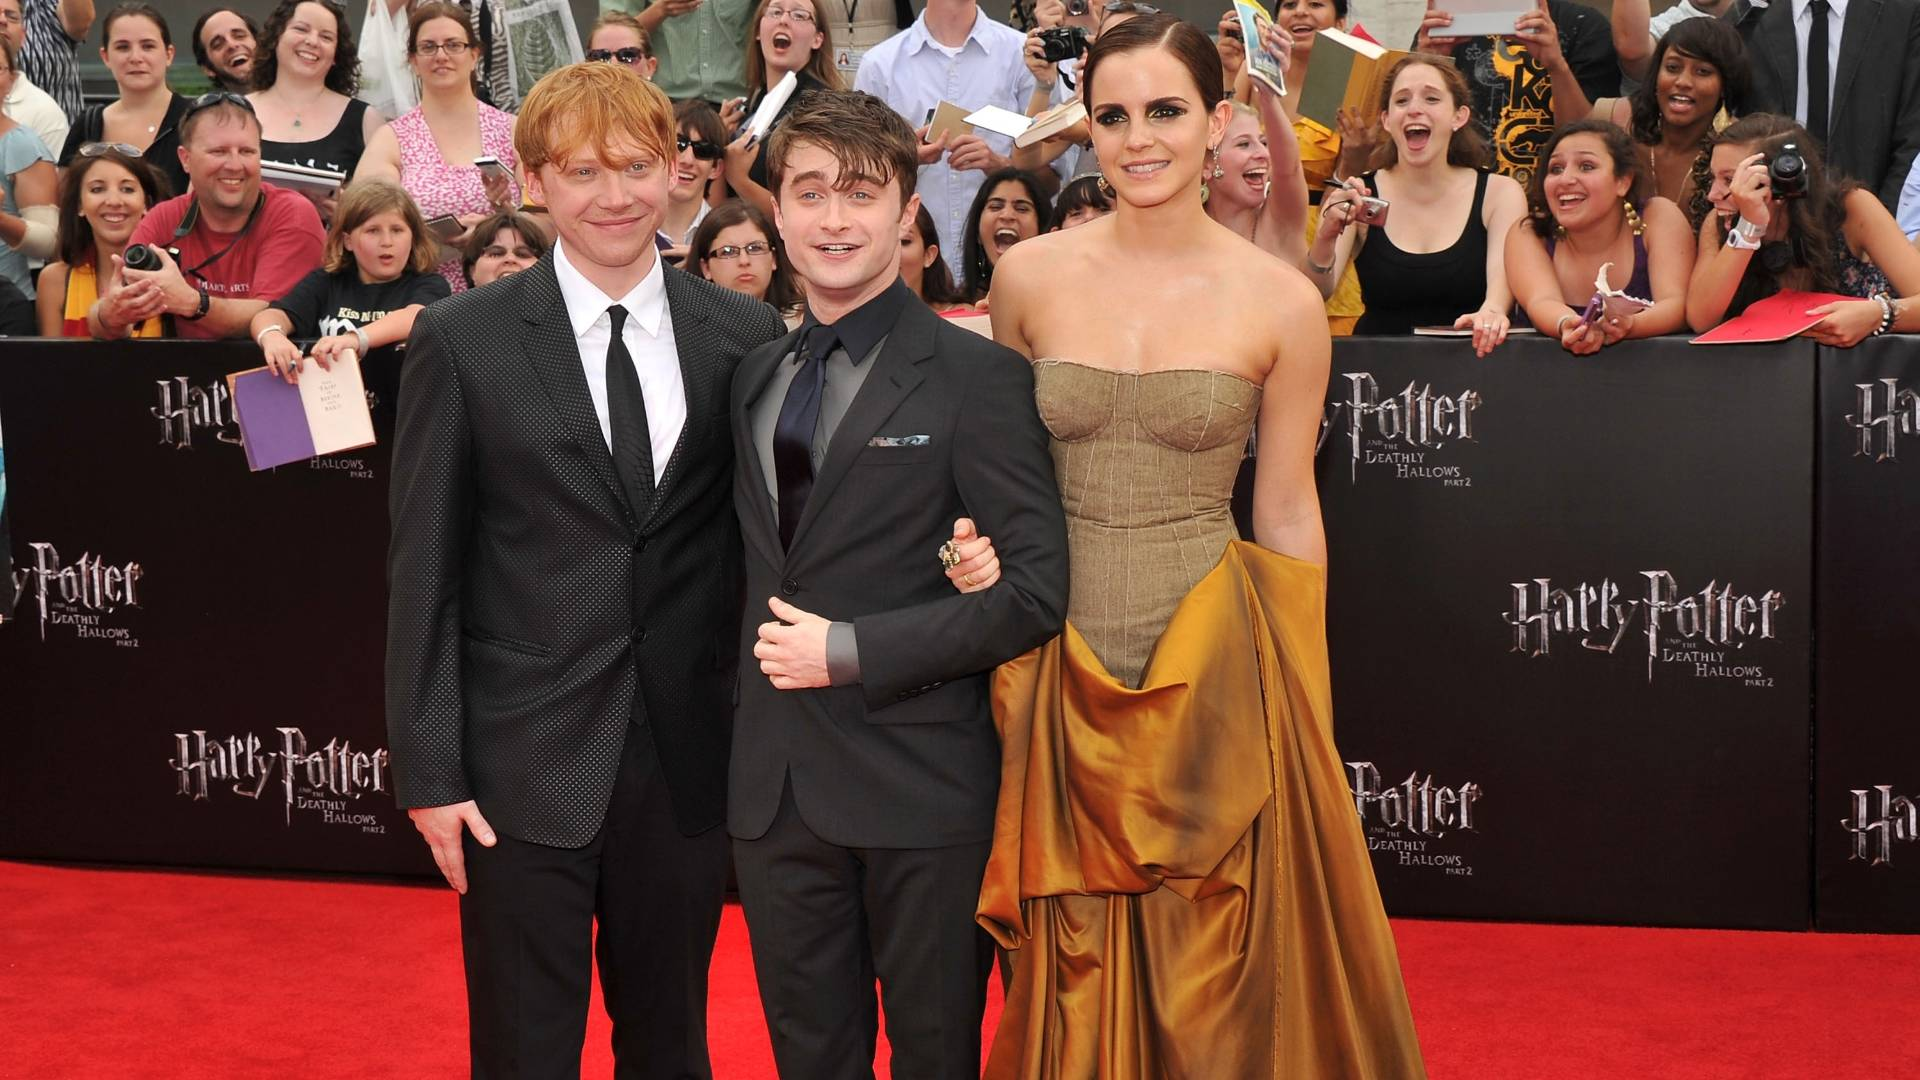 Rupert Grint, Daniel Radcliffe e Emma Watson chegam  pr-estreia de 